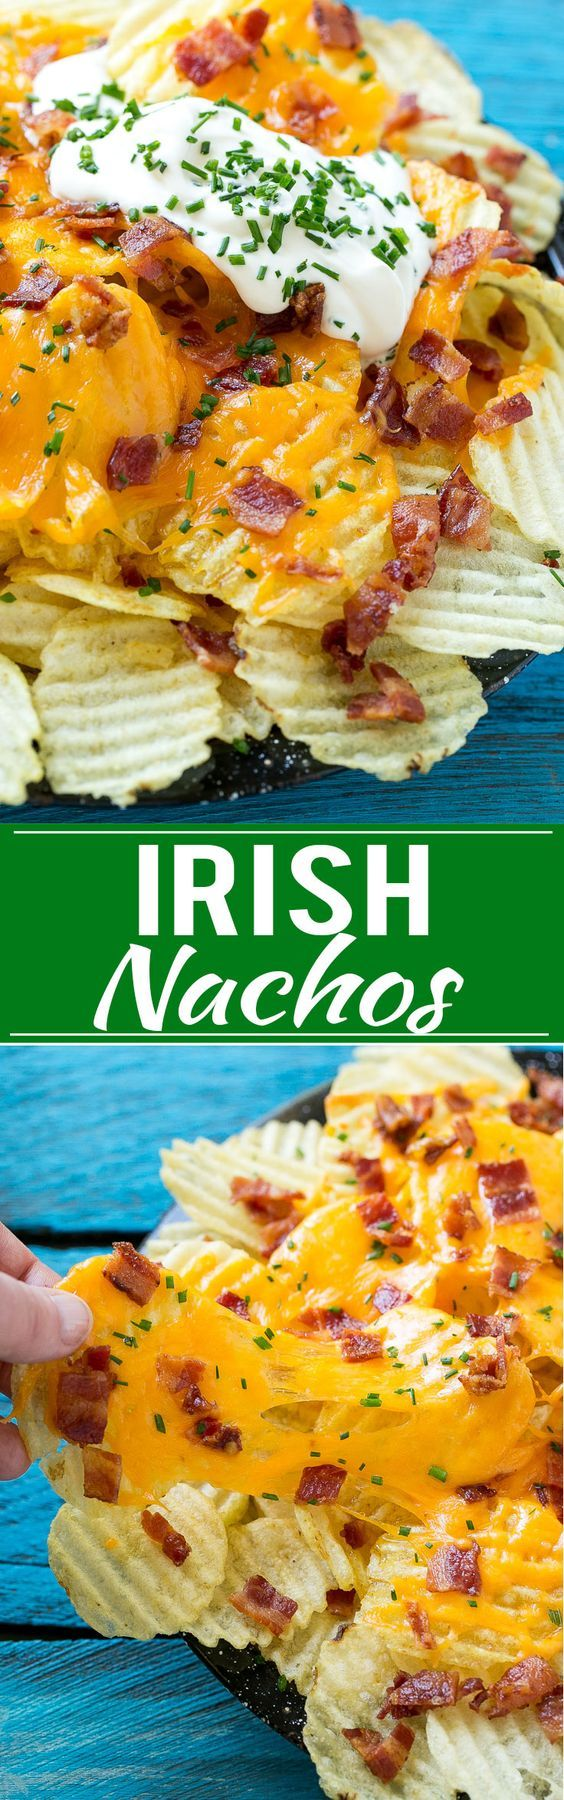 This recipe for Irish Nachos is potato chips layered with plenty of cheese and baked potato toppings. It's a simple yet unique snack that's perfect for parties! #ad